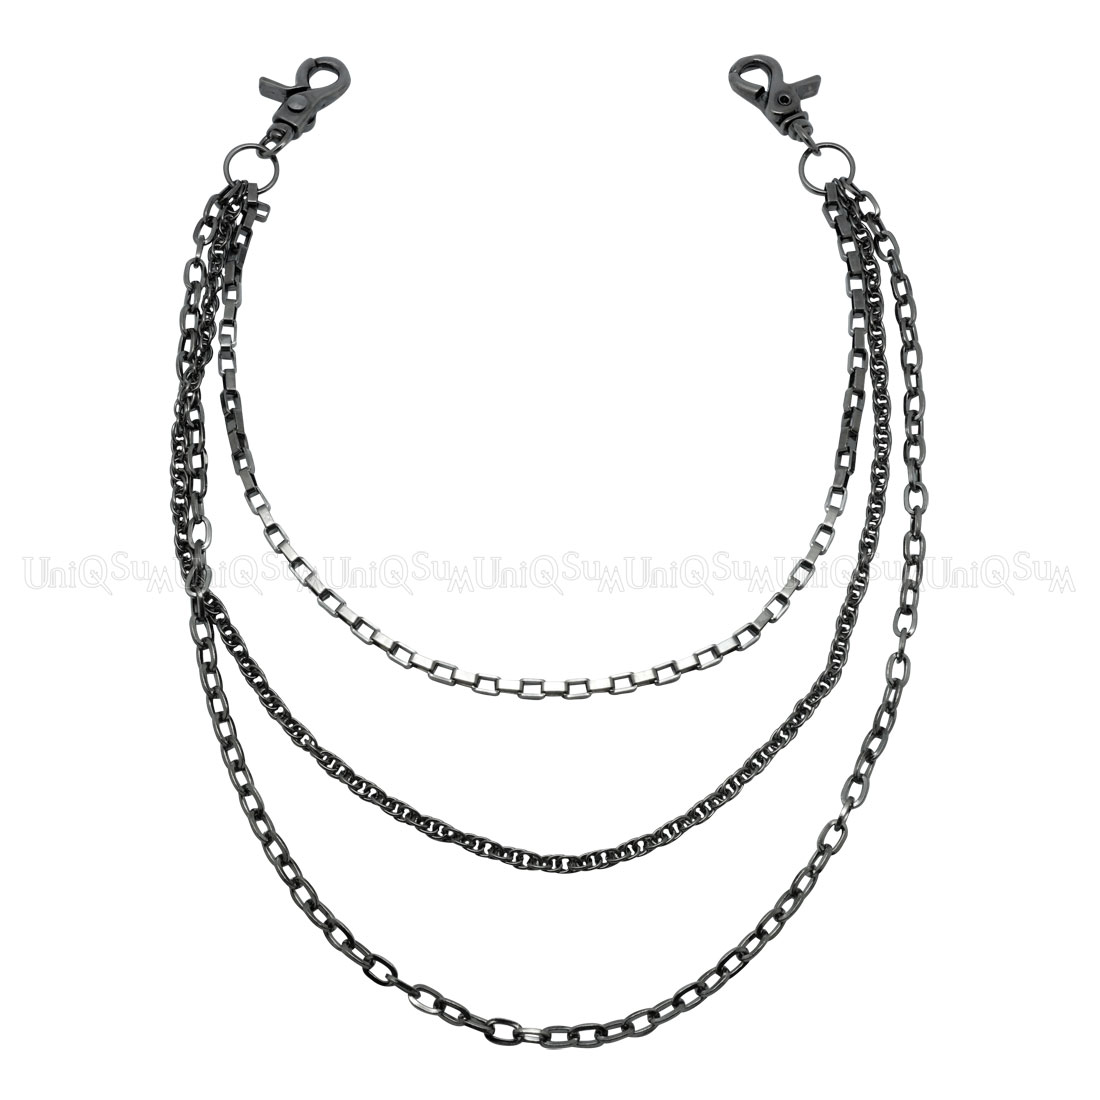 own with new versatile polished lightweight inch inches sterling necklace or sparkling to layered trace on itm cable pendants finish highly jewellers chain and wear chains silver its in